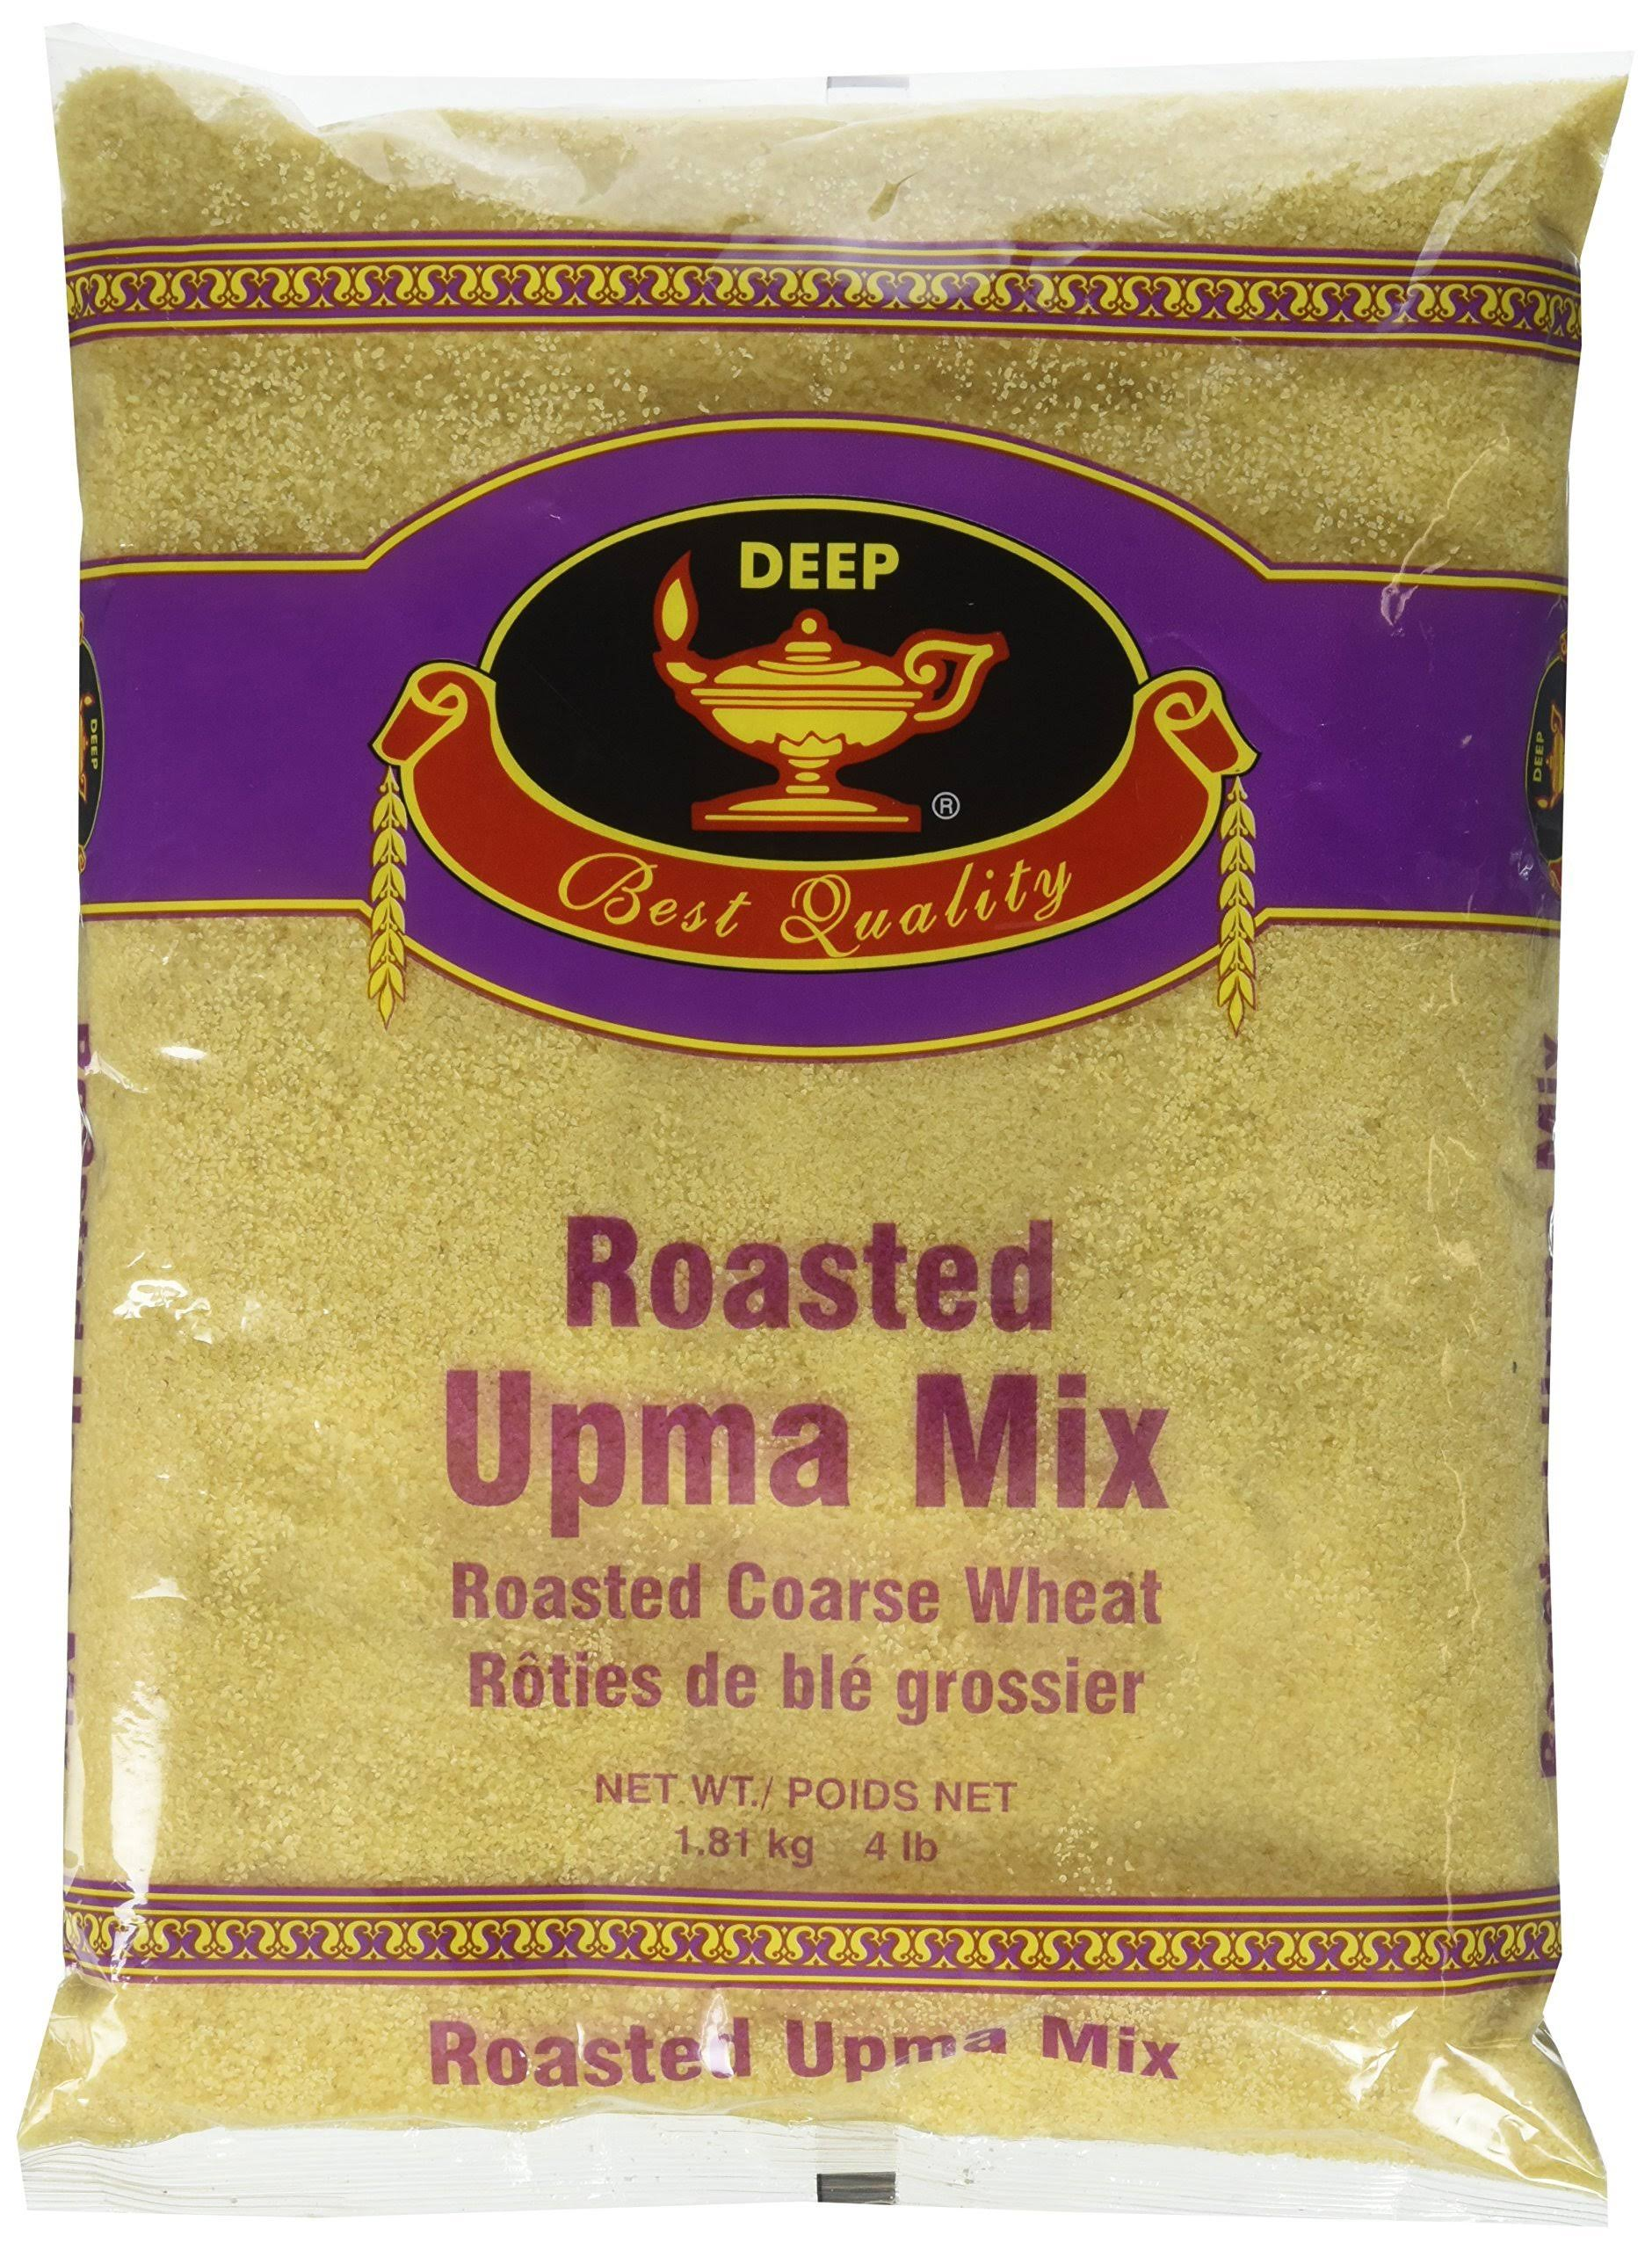 Deep Roasted Upma Mix (4 lb, 1.814 kg)